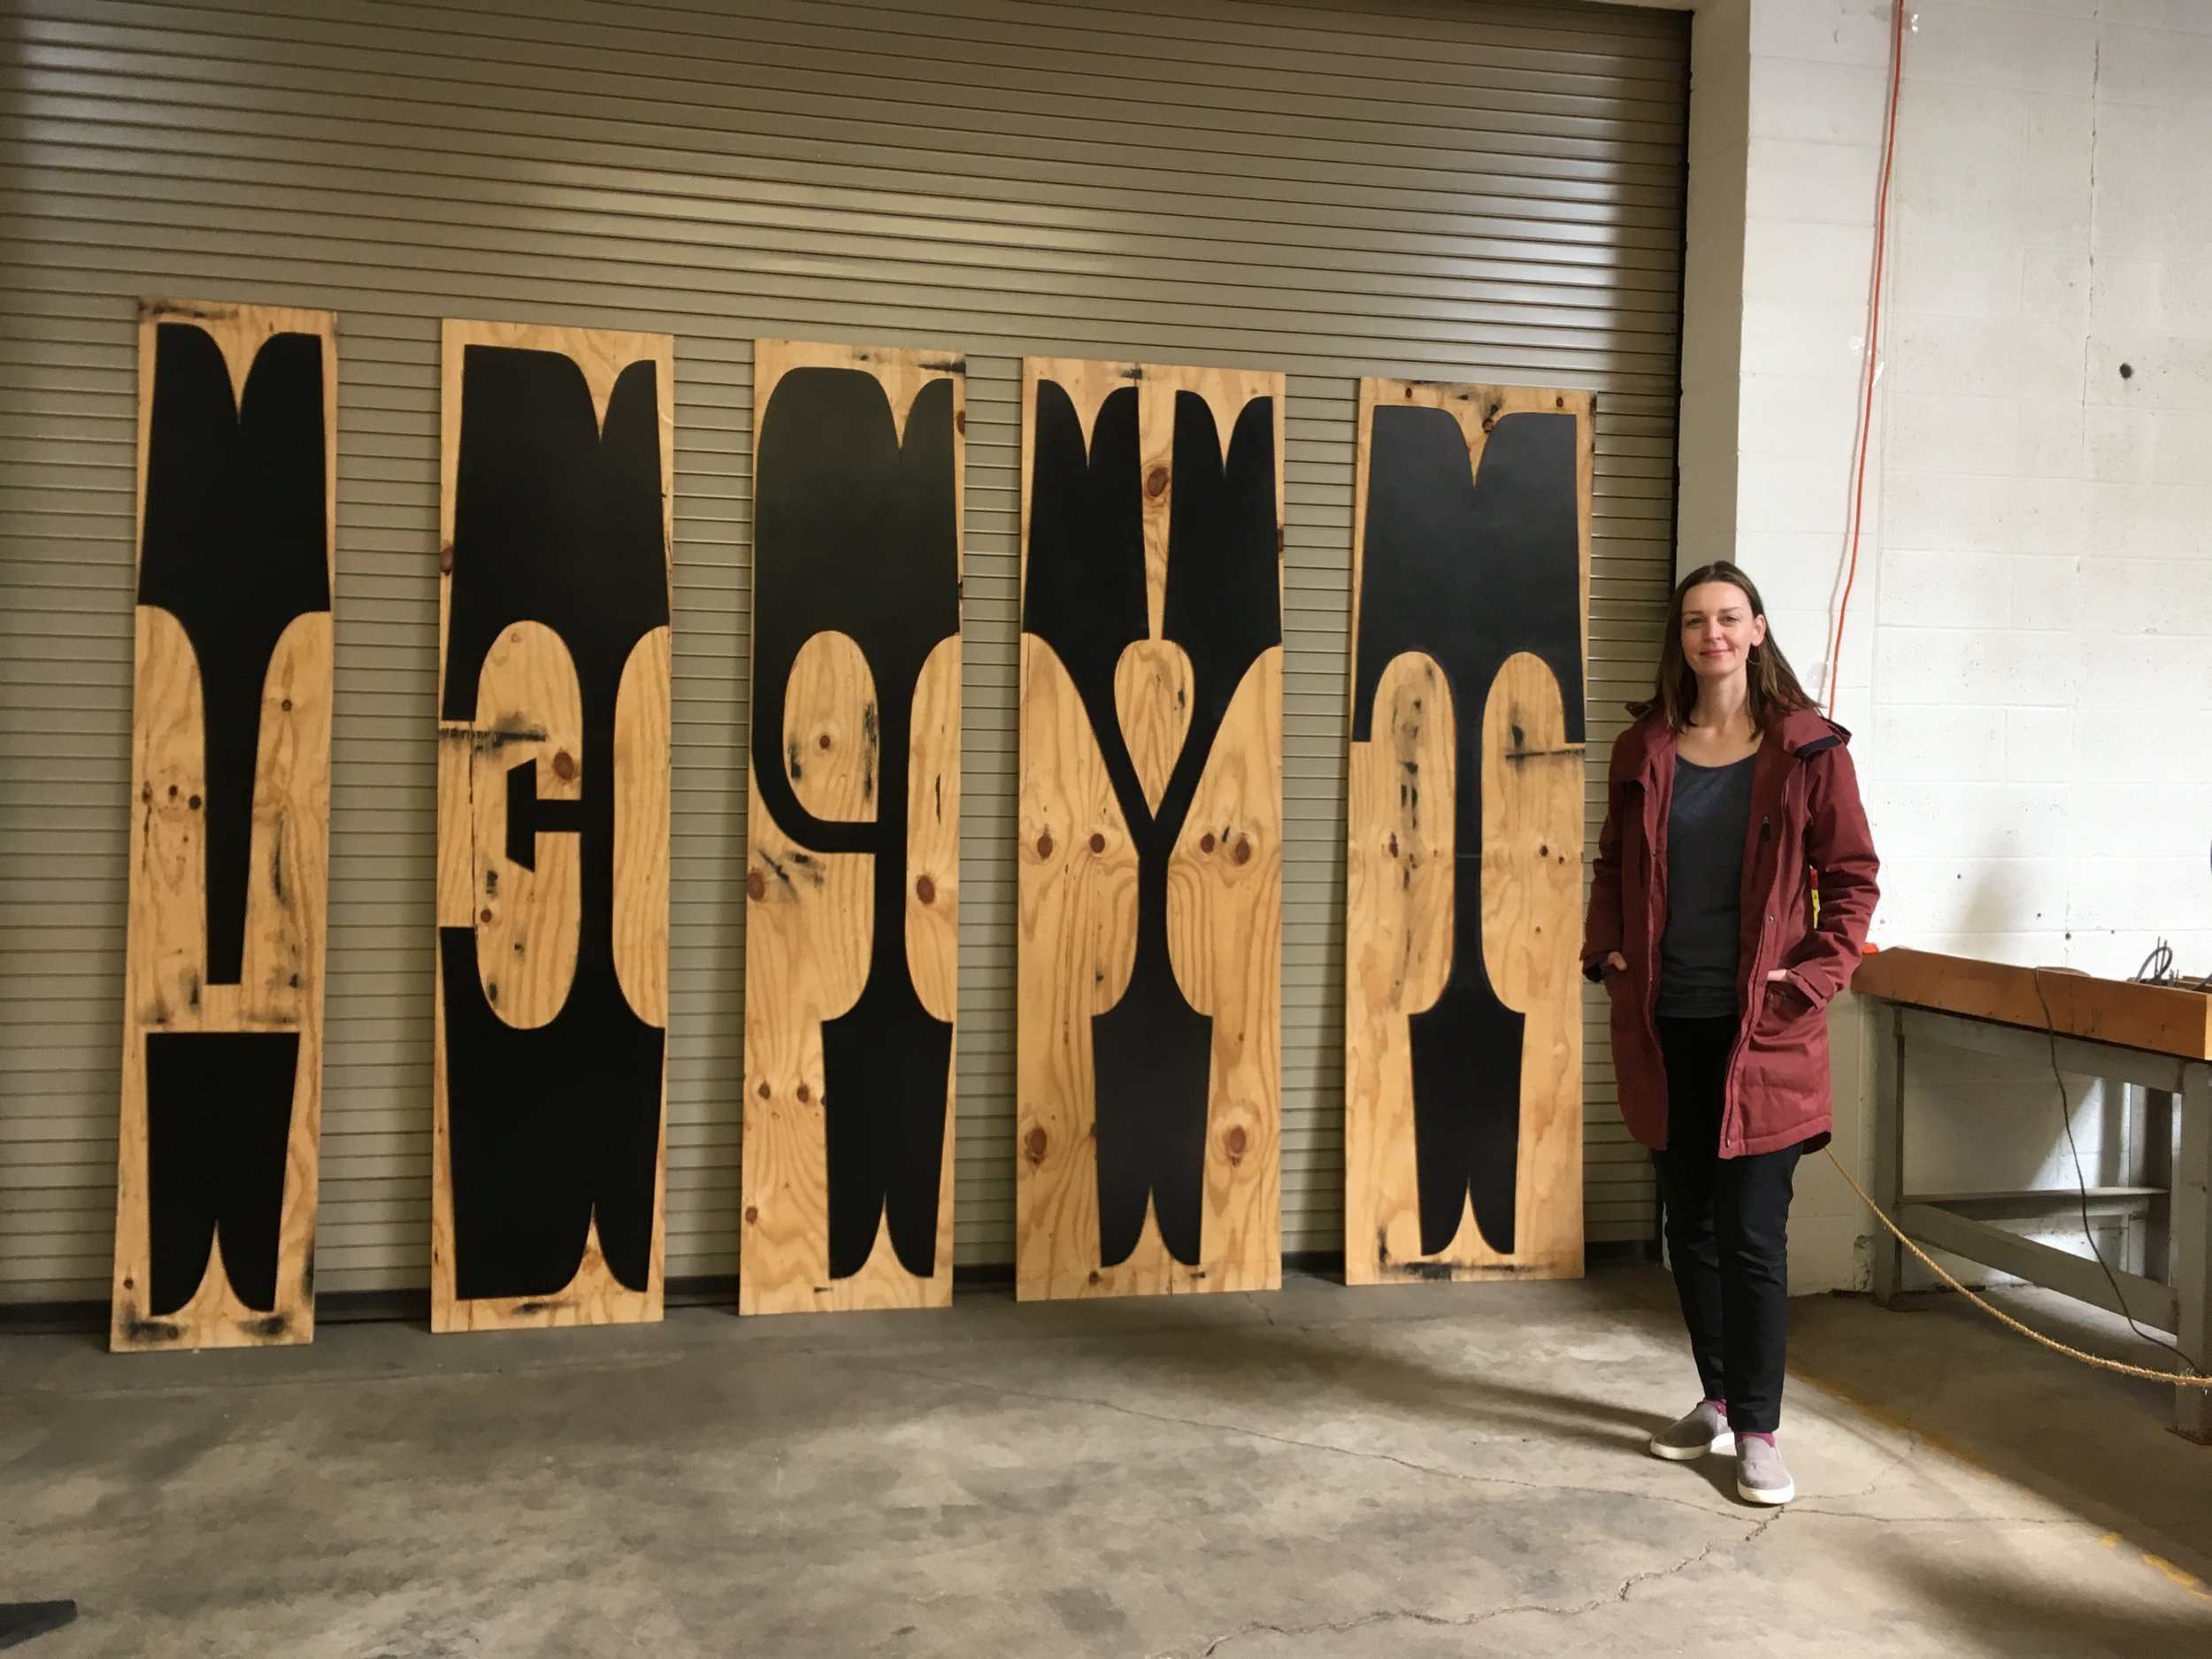 Here I am on my visit to the Hamilton Wood Type Museum in Wisconsin. It was here I learned about die-cut technology and why this was a valuable advancement for the creation of wood type.